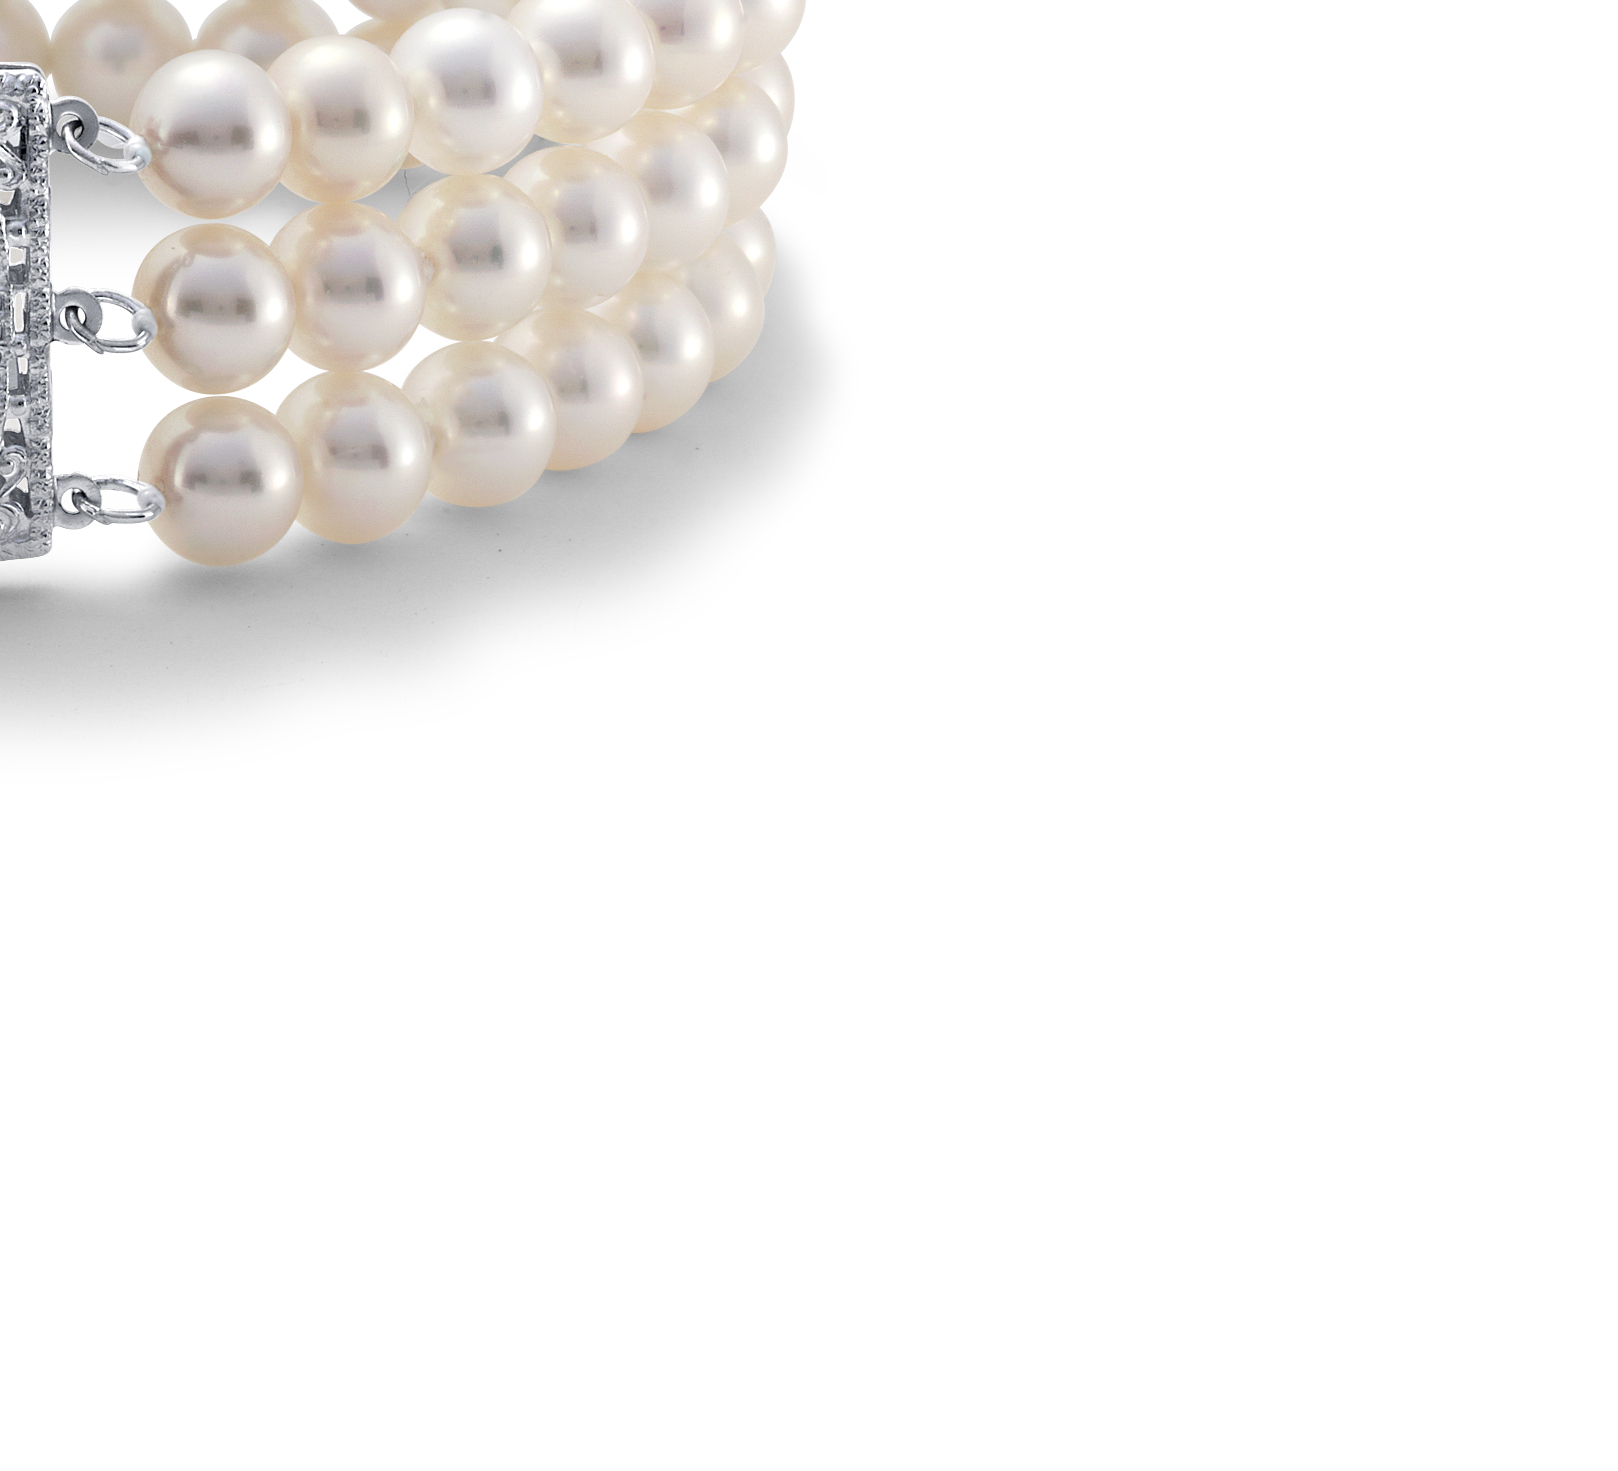 Triple-Strand Freshwater Cultured Pearl Bracelet in 14k White Gold (6.0-6.5mm)